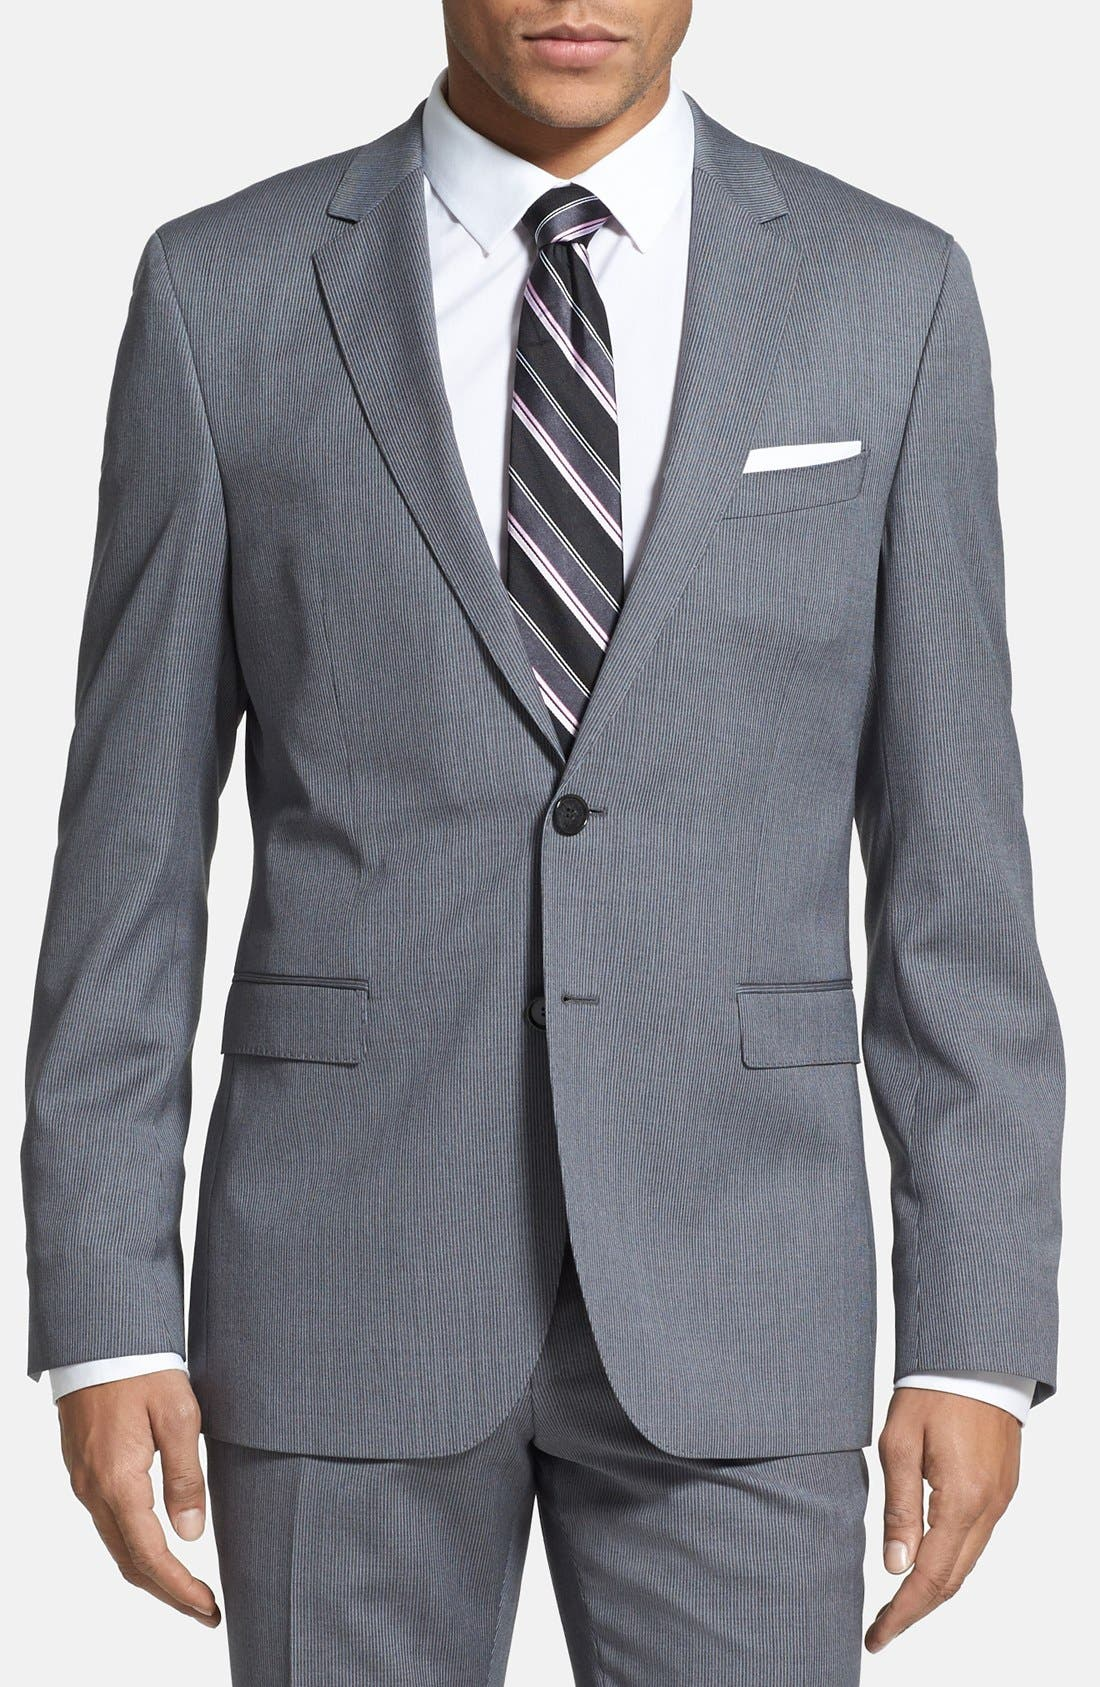 ZZDNUHUGO BOSS,                             BOSS HUGO BOSS 'Ryan/Win' Extra Trim Fit Stripe Suit,                             Alternate thumbnail 6, color,                             030